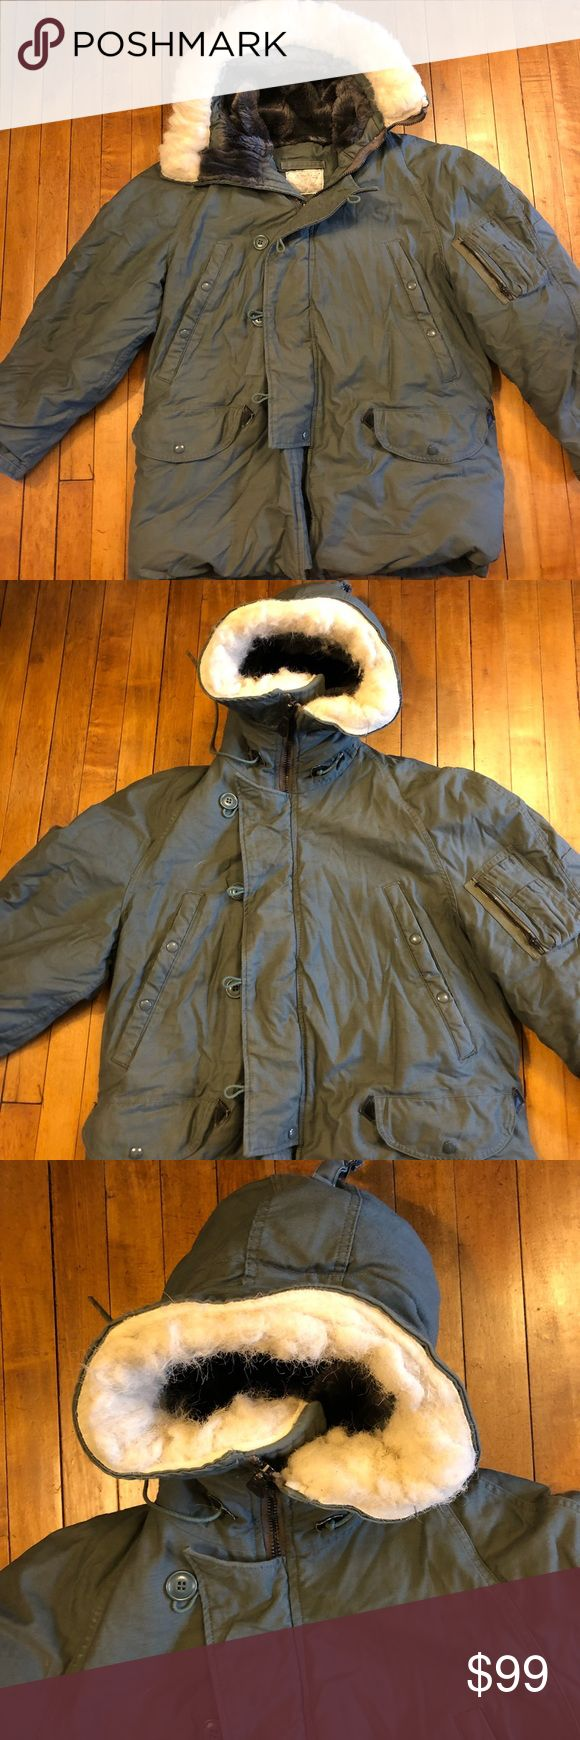 Extreme Cold Weather Military N3-B Coat Parka Lancer Clothing Corporation Military Issue Extreme Cold Weather N3-B Parka with Synthetic Fur on Hood  Size- Medium Lancer Clothing Corporation Jackets & Coats Military & Field